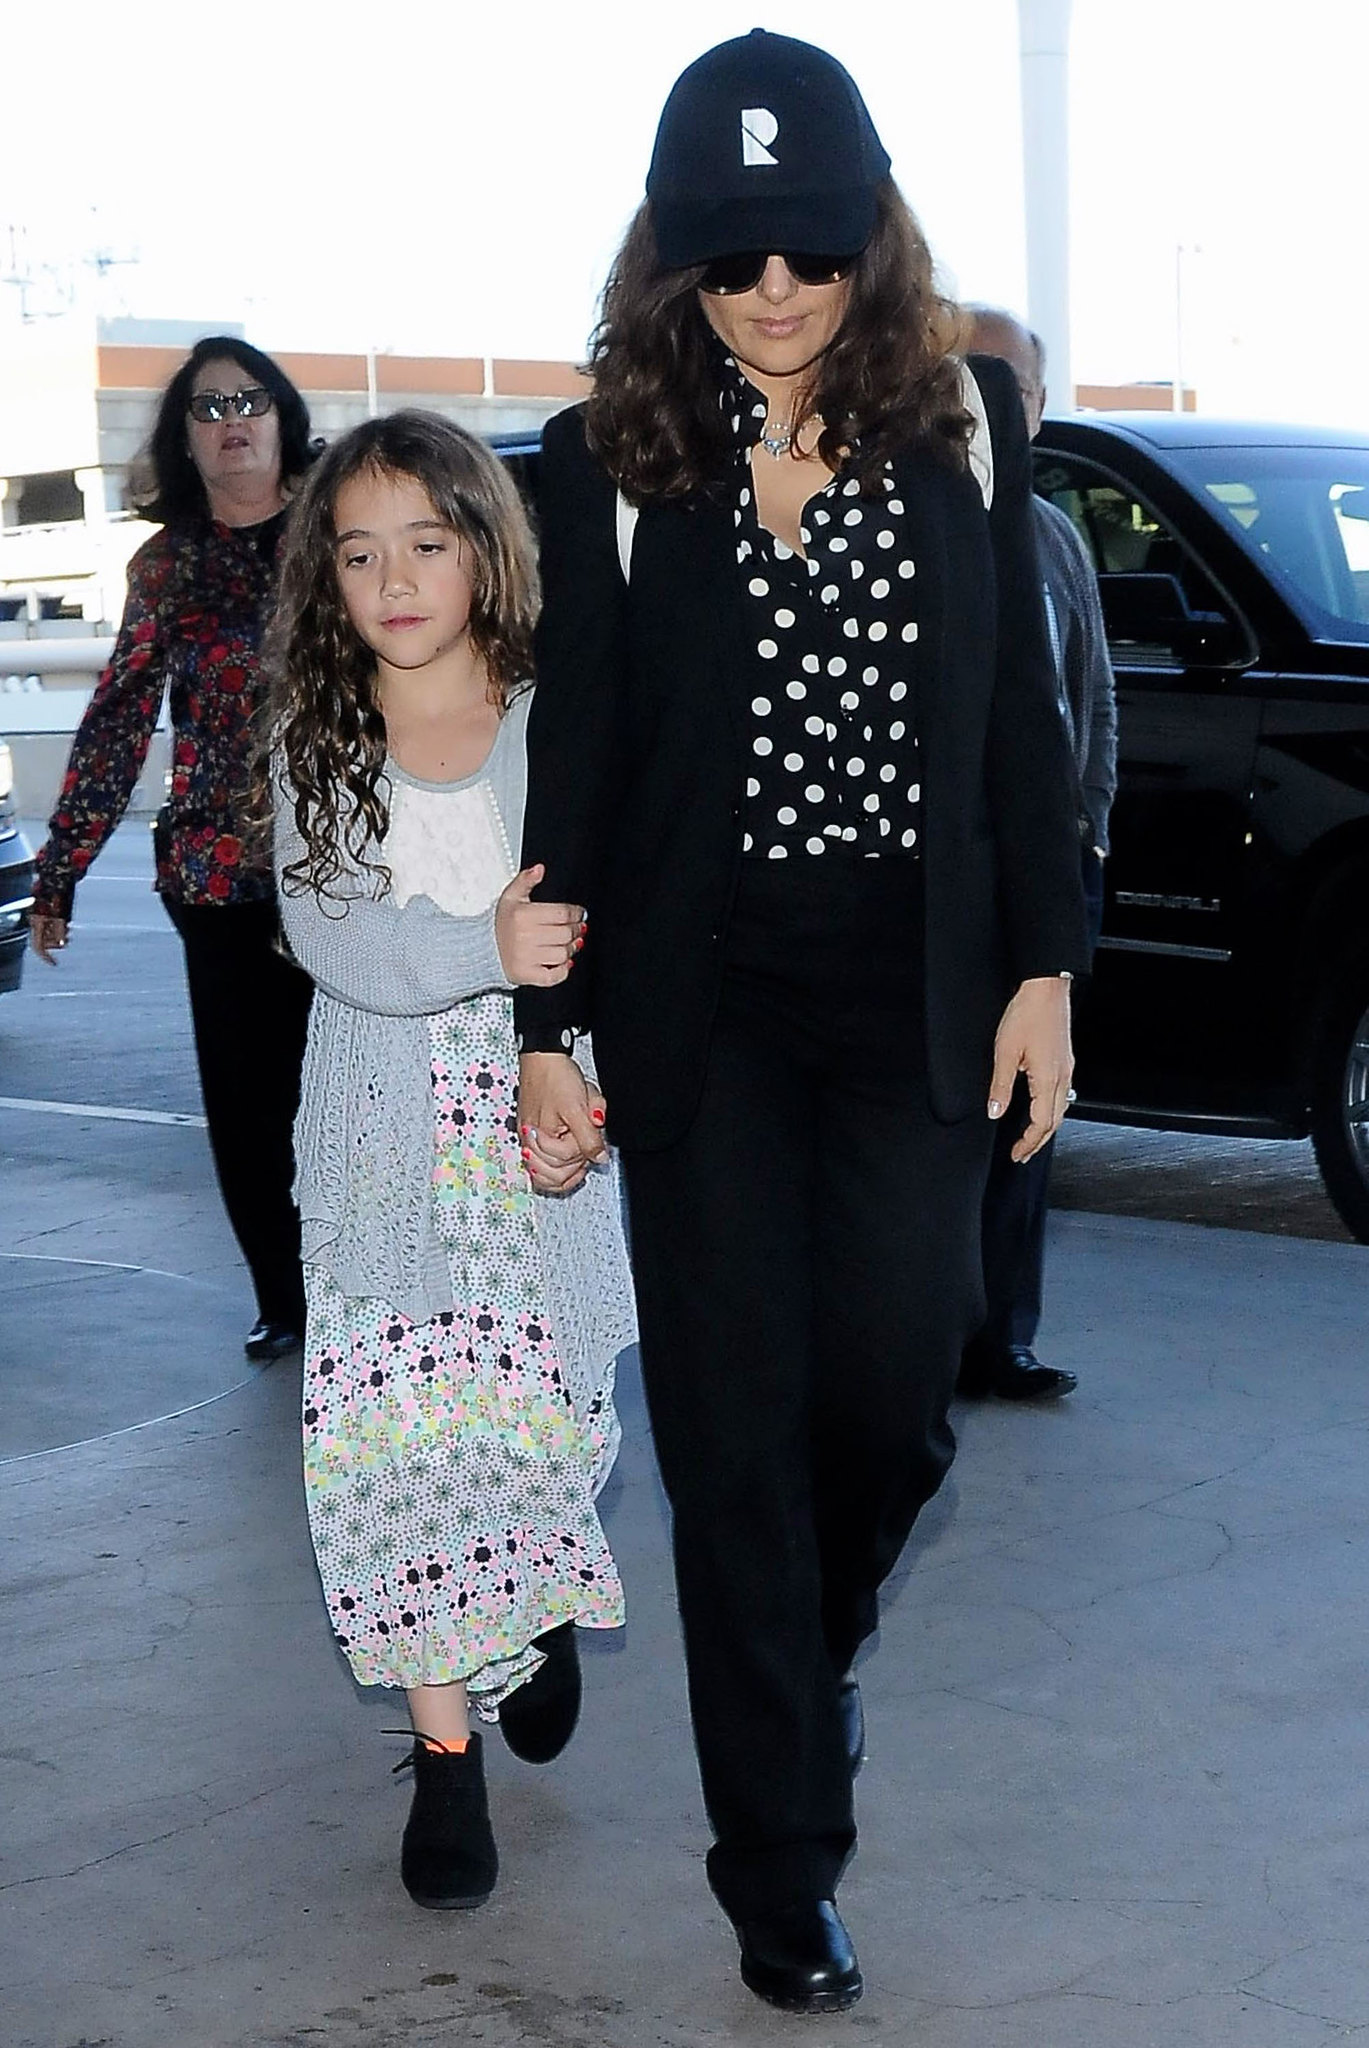 Salma Hayek and daughter arrive at LAX 4/18 | Lipstick Alley